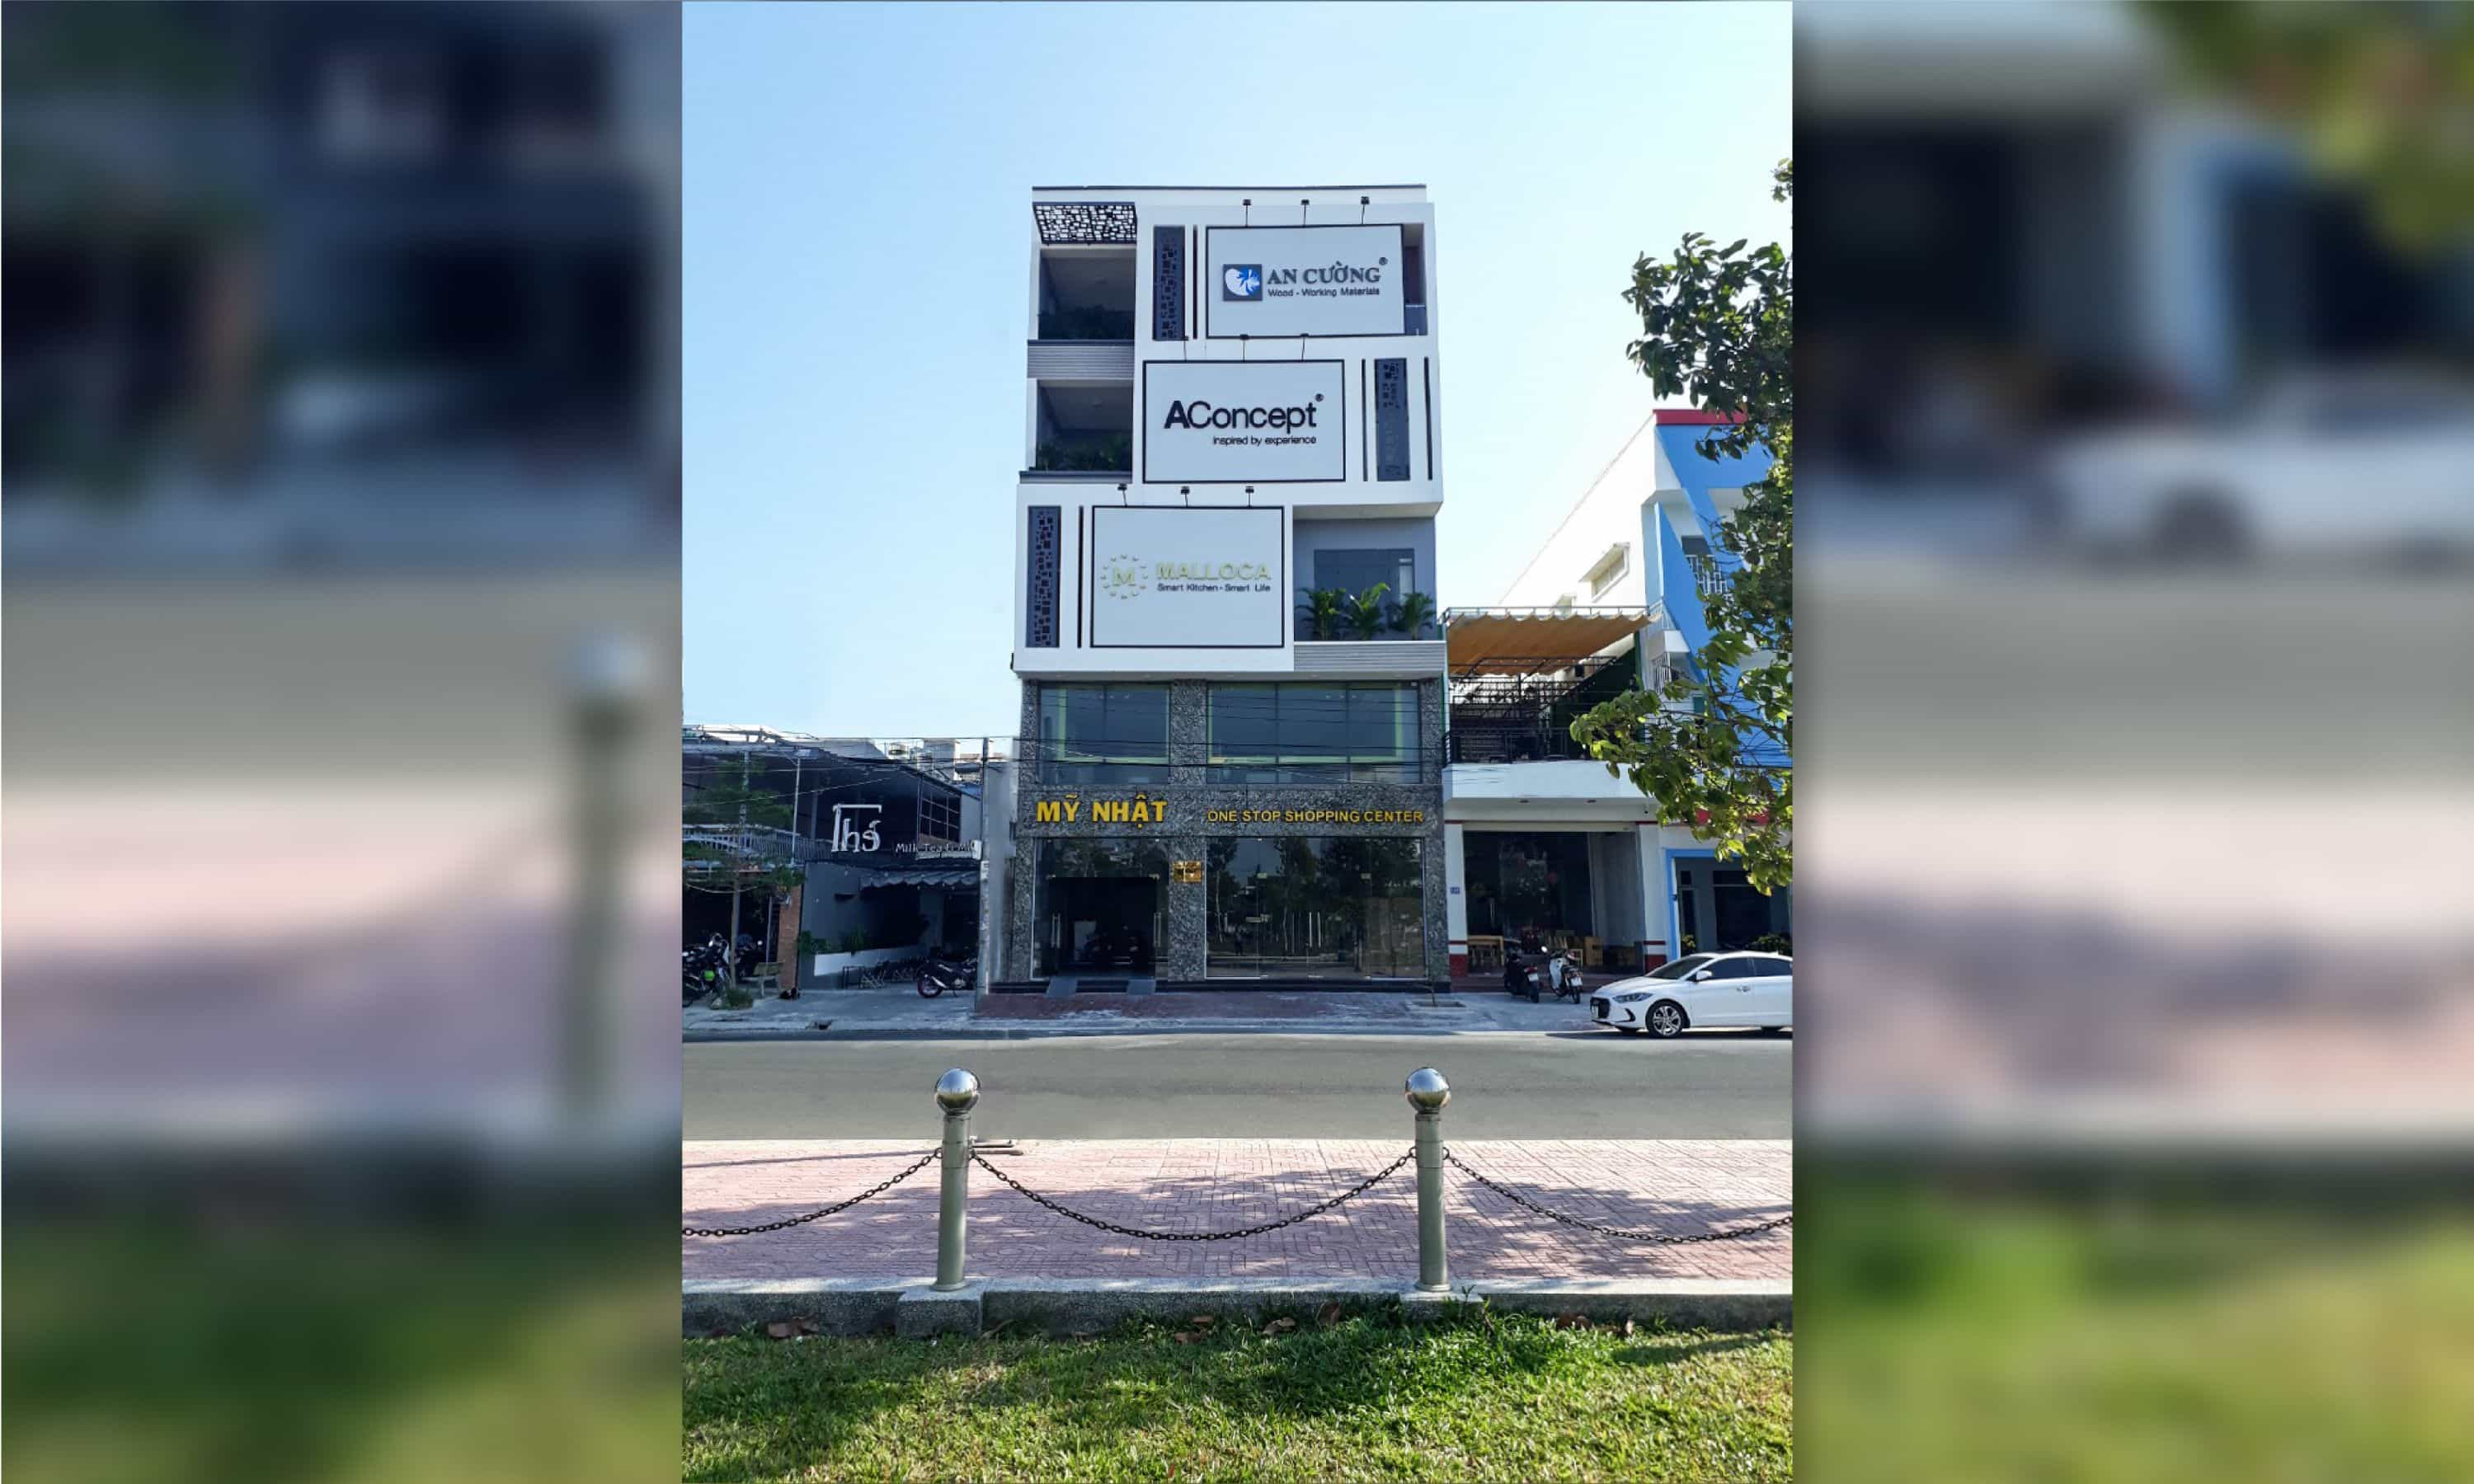 PHAN THIẾT ONE-STOP SHOPPING CENTER<br />